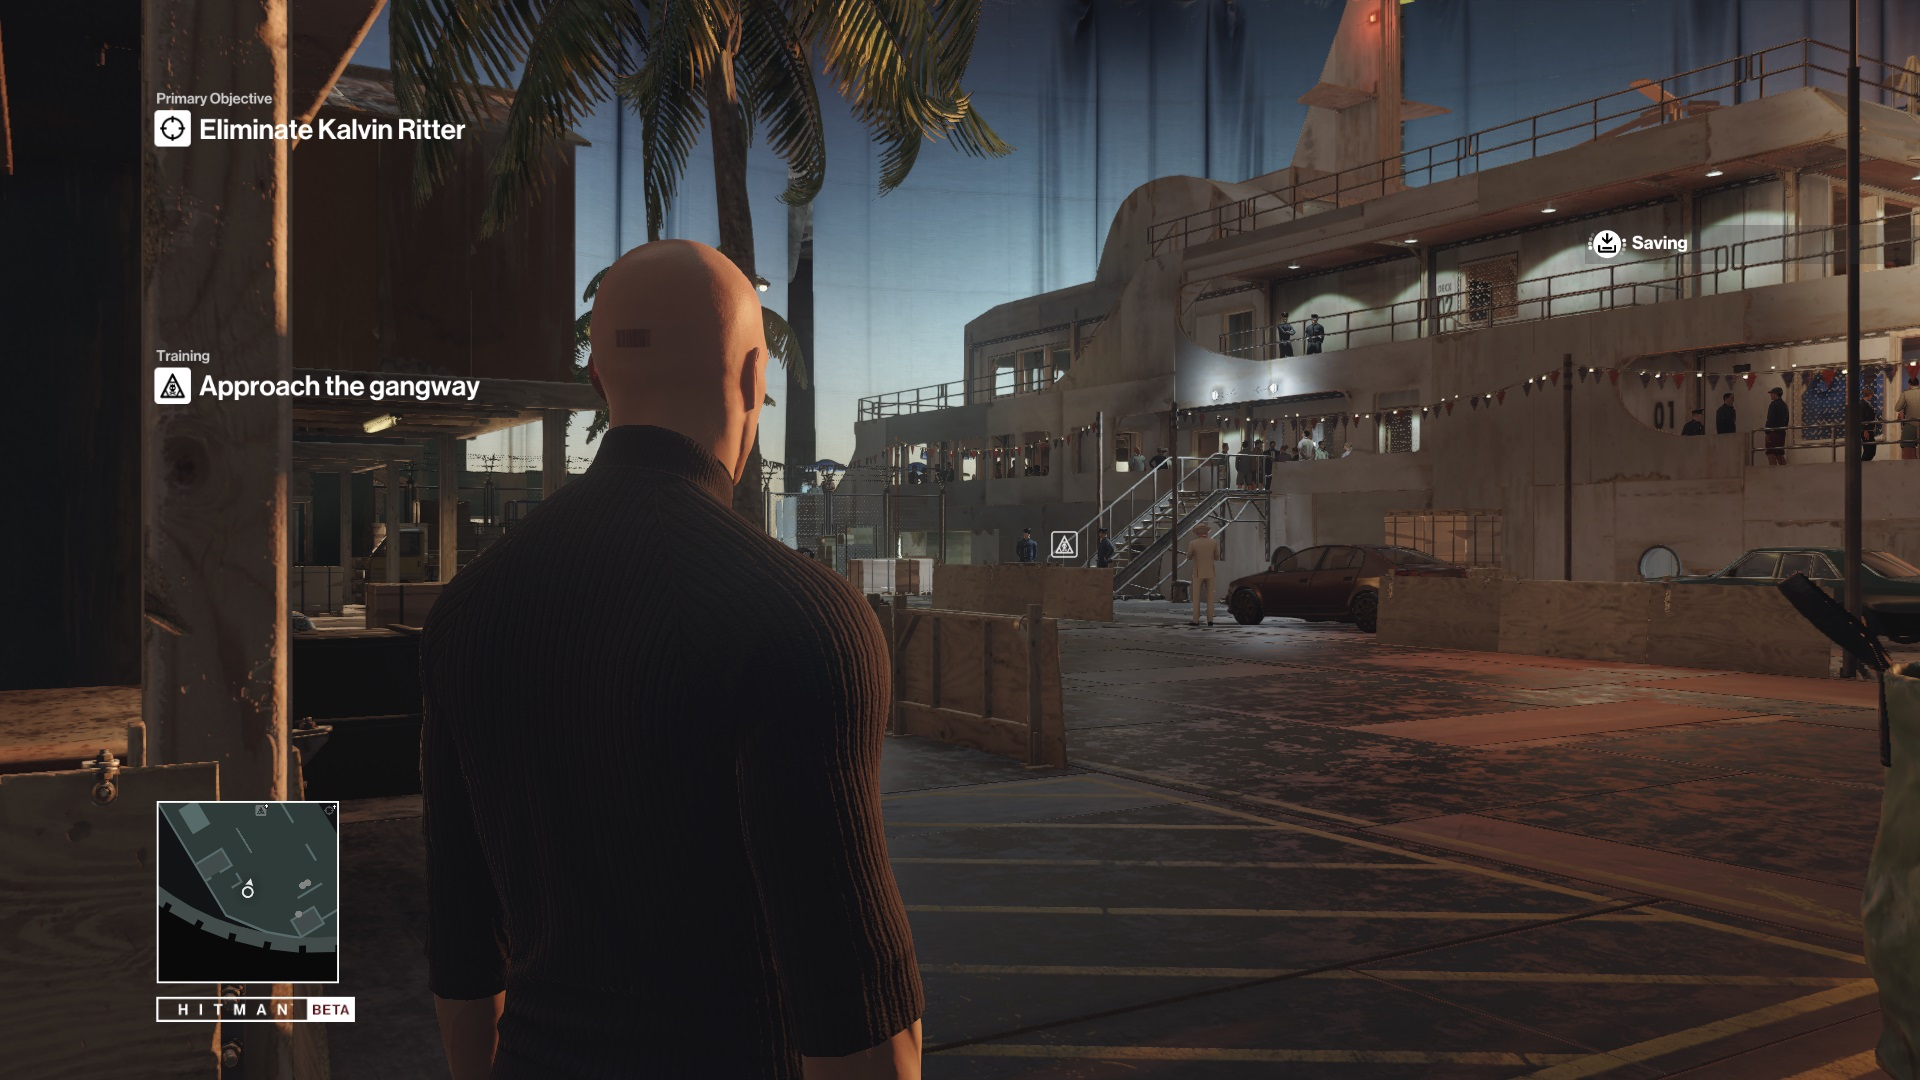 hitman beta impressions back for some blood money usgamer. Black Bedroom Furniture Sets. Home Design Ideas